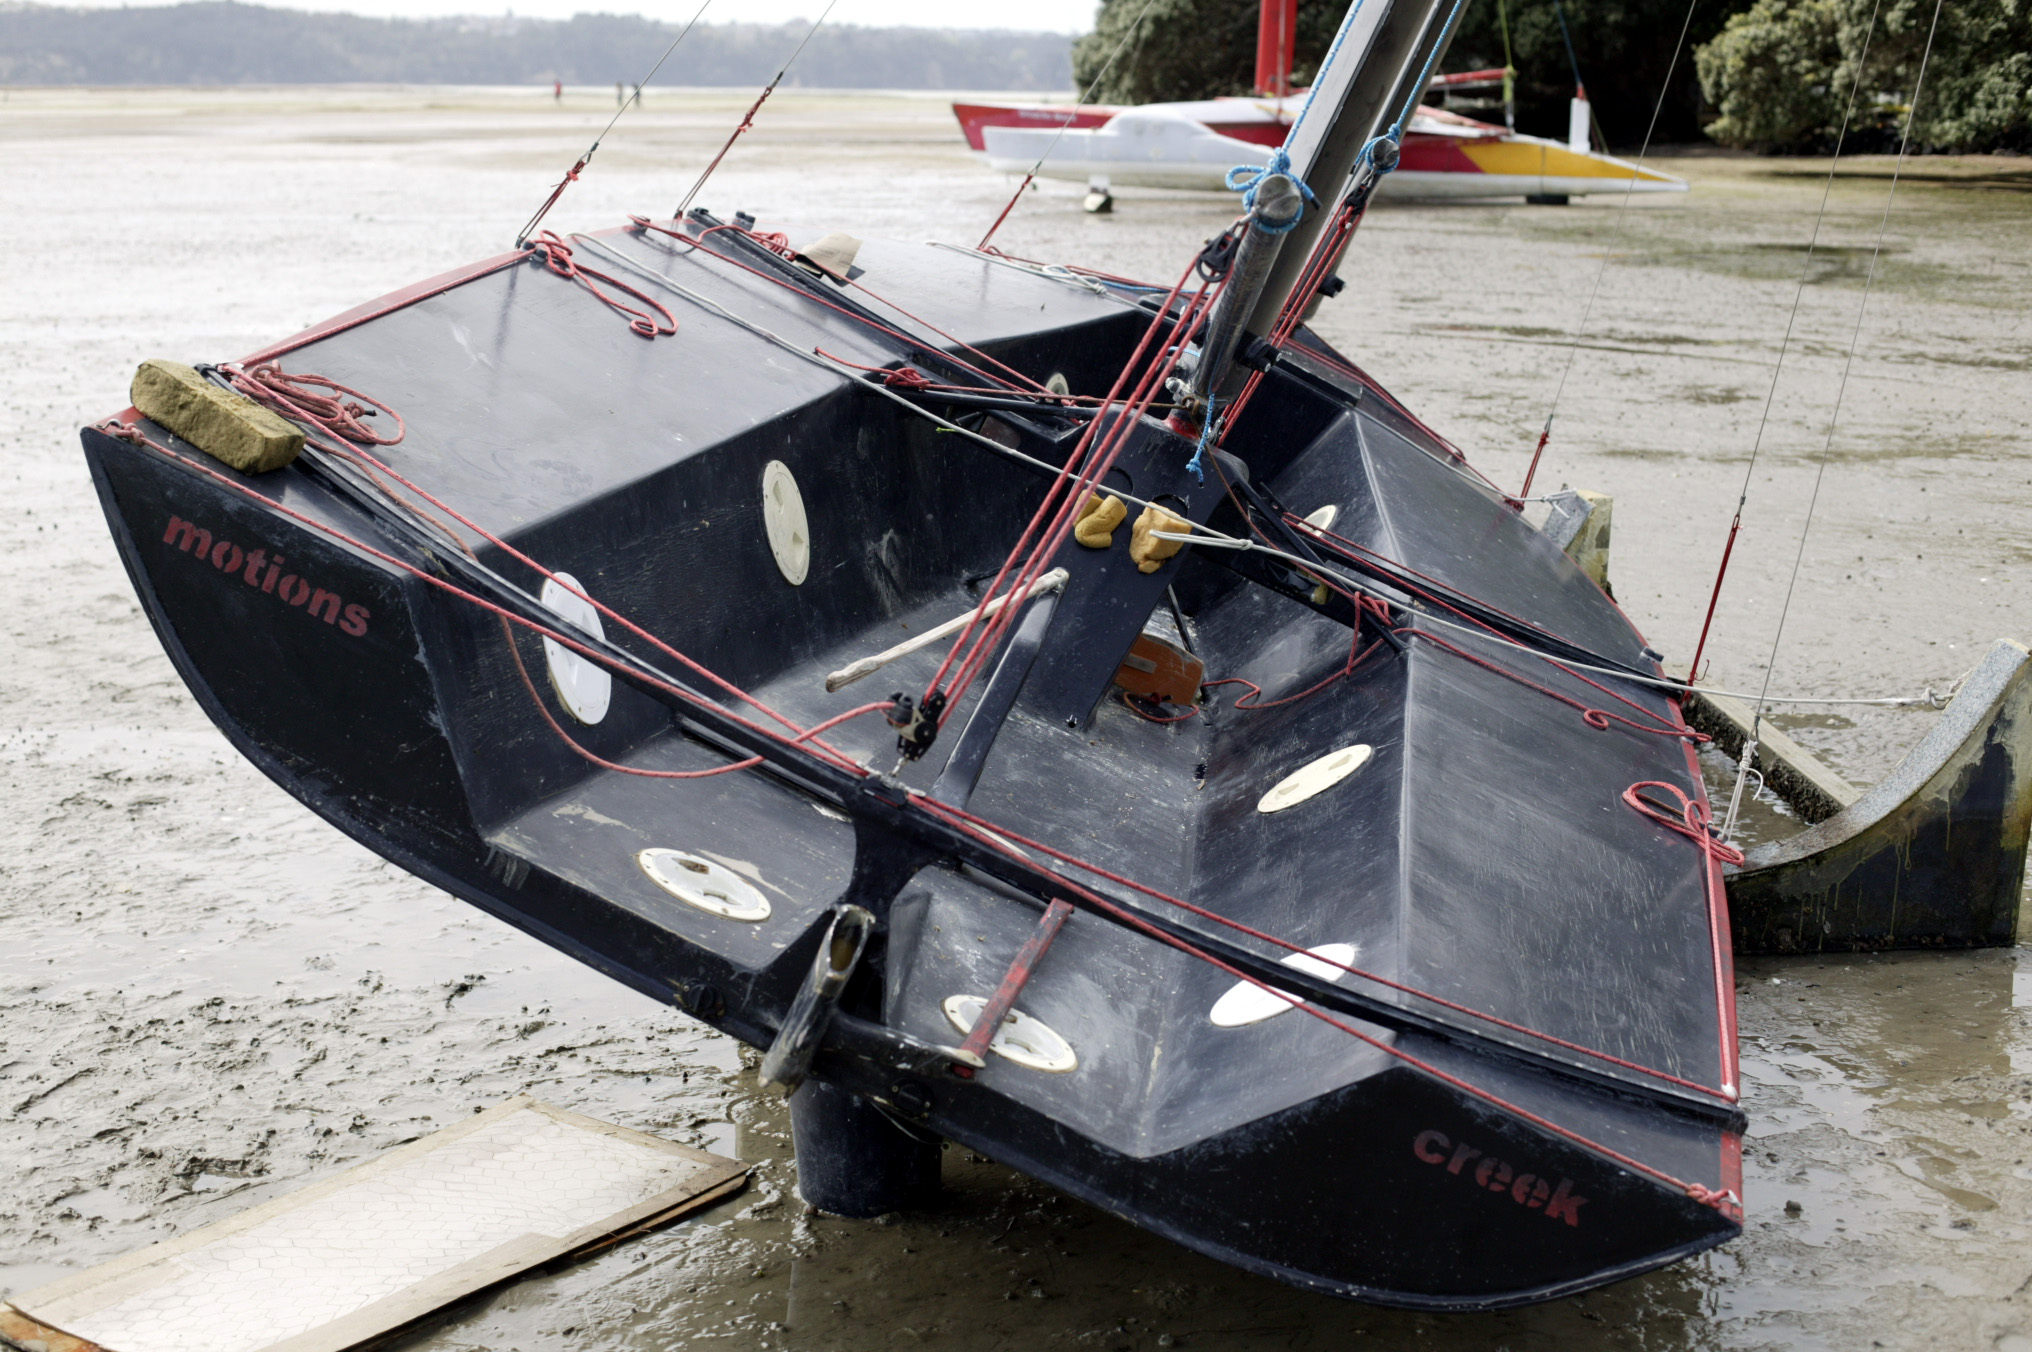 ultimate 20 to 26' bouy racer | Page 2 | Boat Design Net